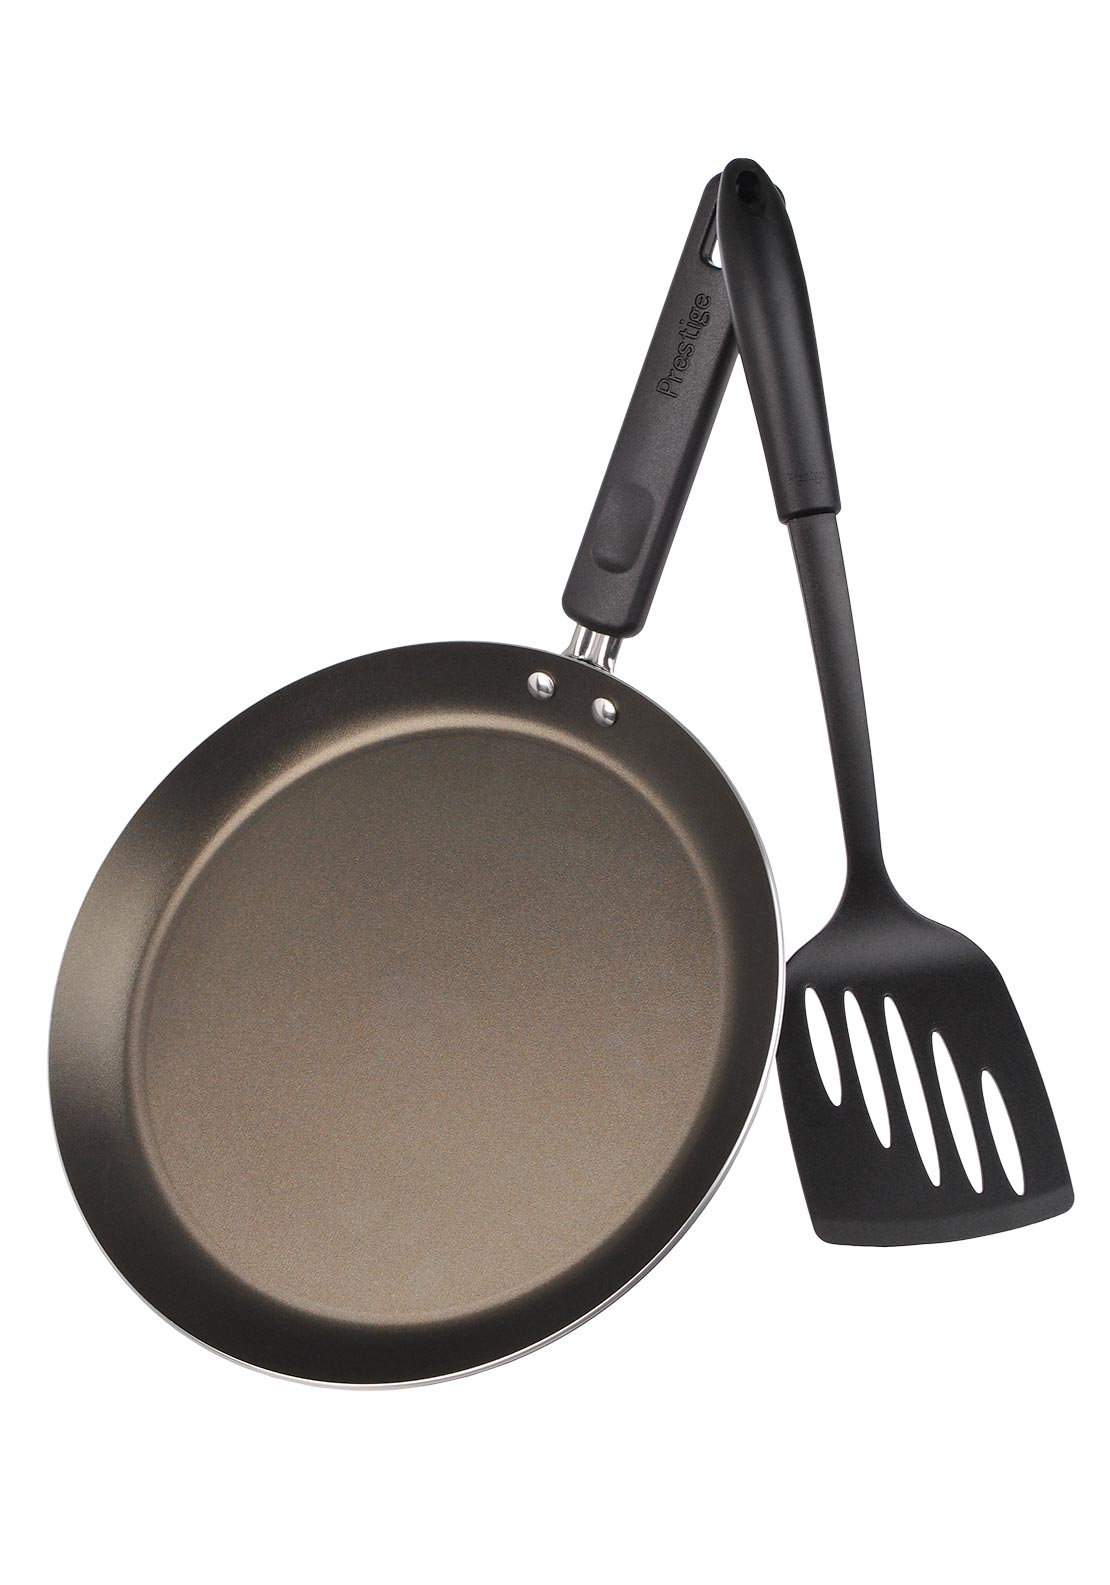 Prestige Crepe Pan with Nylon Turner, 24cm